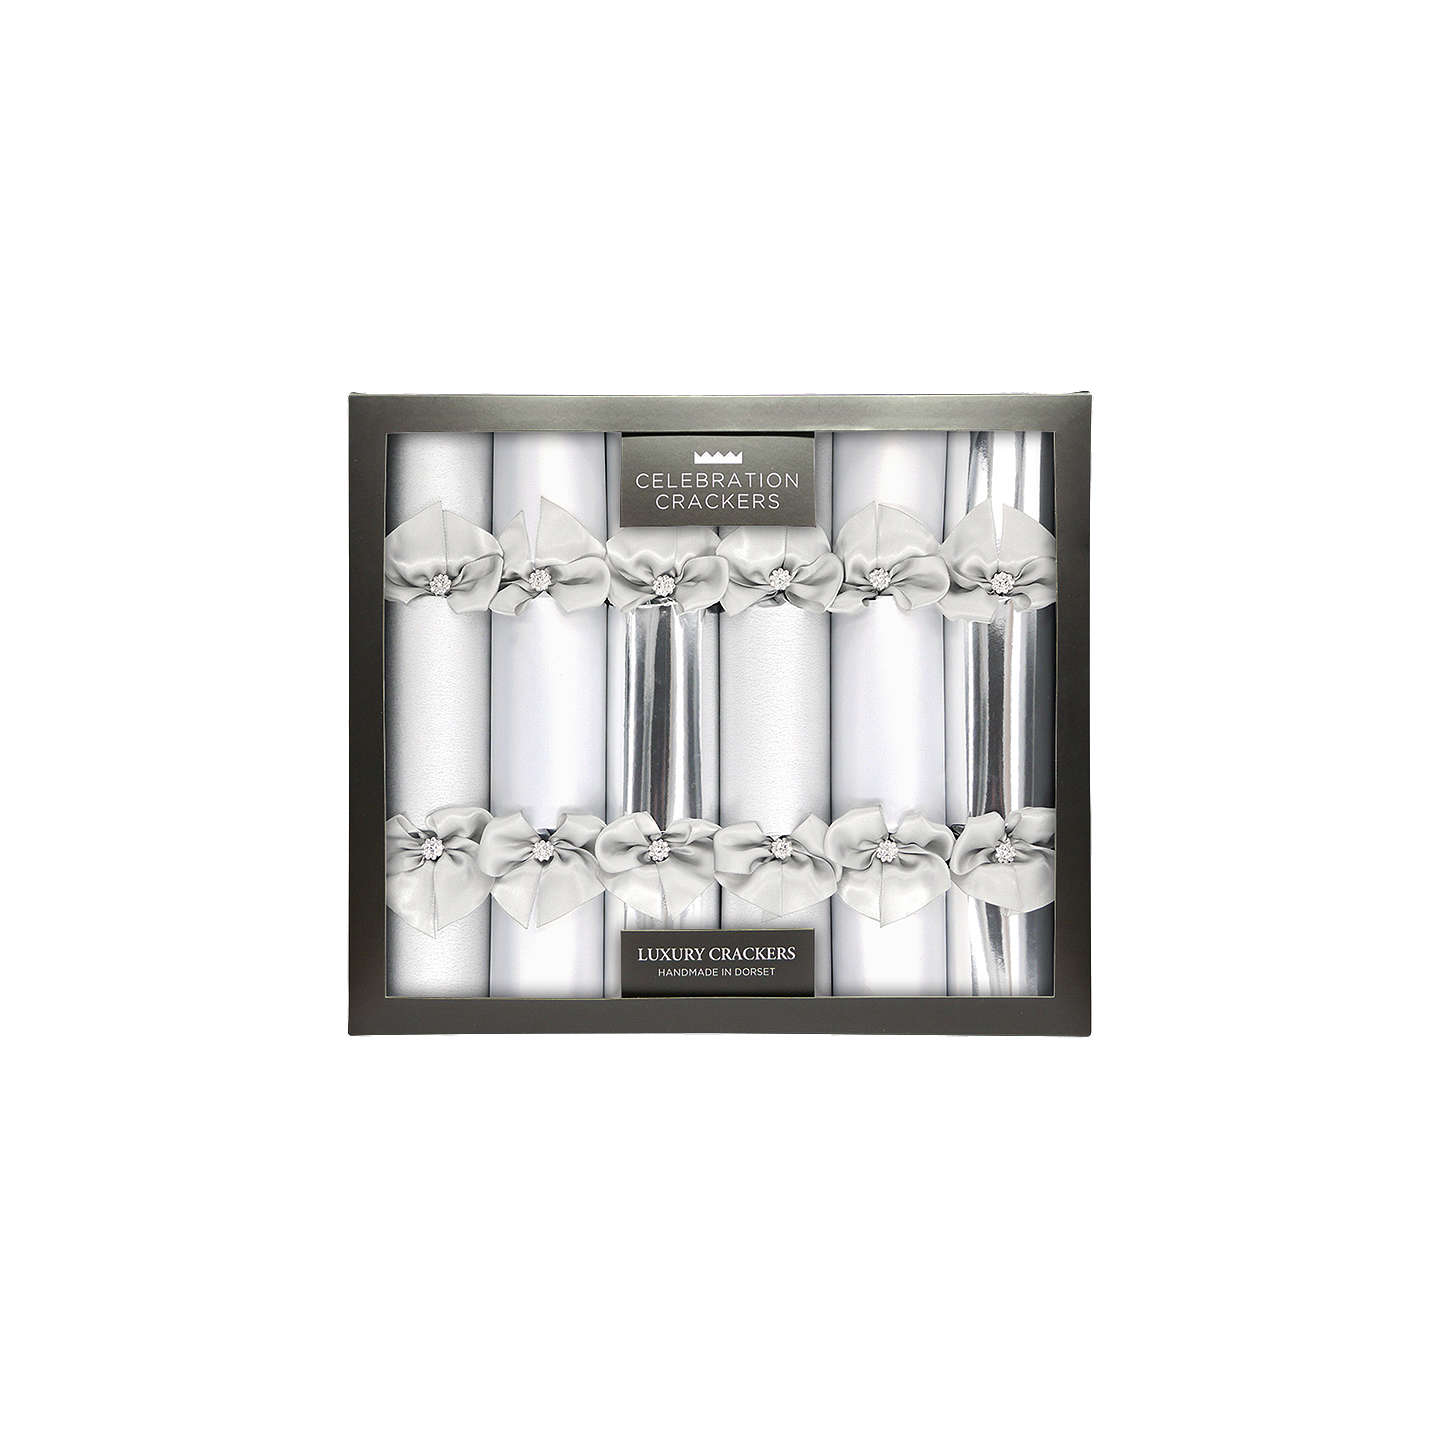 Celebration crackers luxury handmade diamante christmas crackers buycelebration crackers luxury handmade diamante christmas crackers pack of 6 silver online at johnlewis solutioingenieria